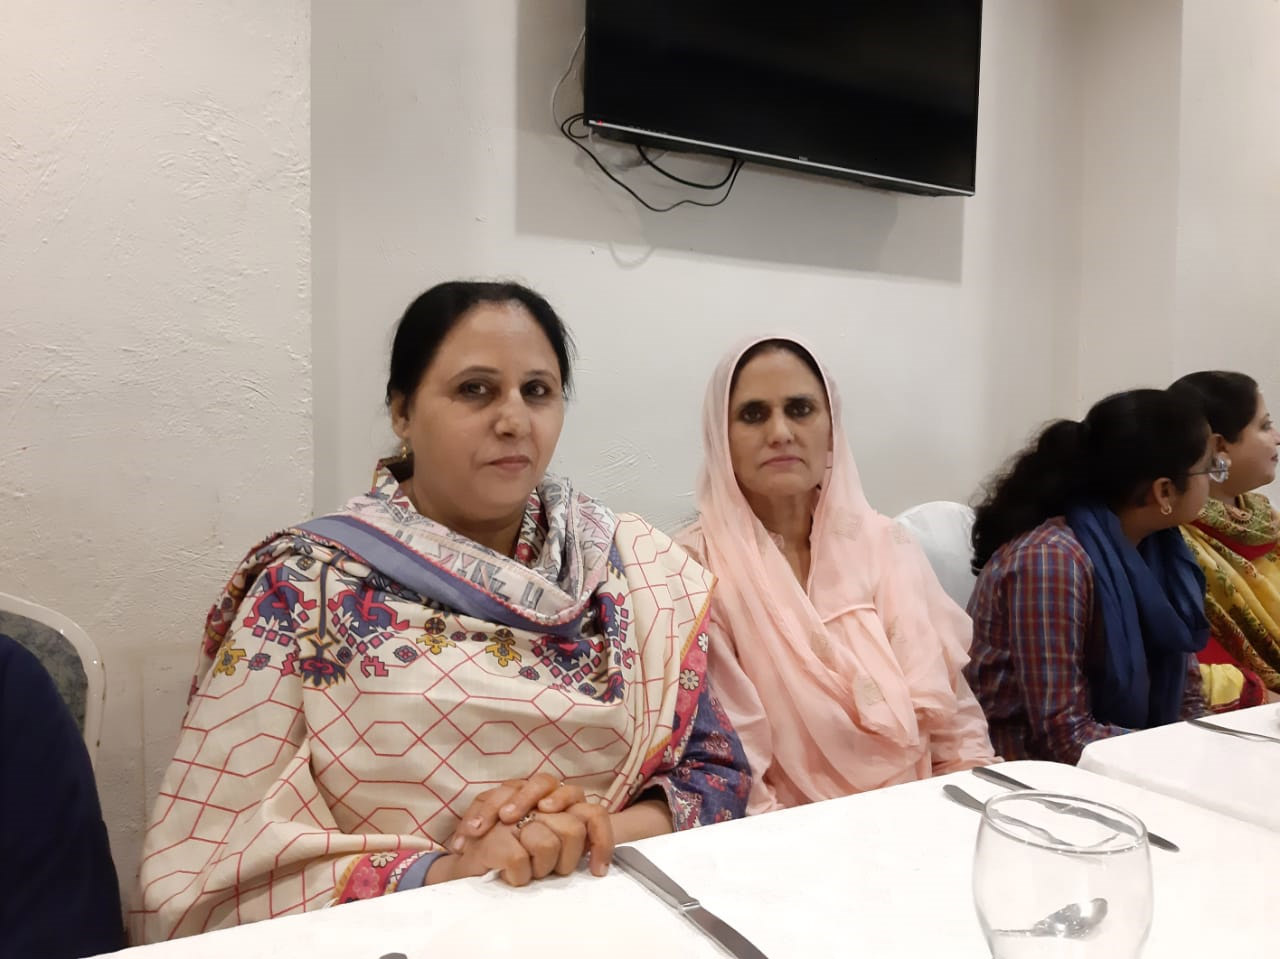 The two sisters Ghazala Khanam and Rudaba Irshad